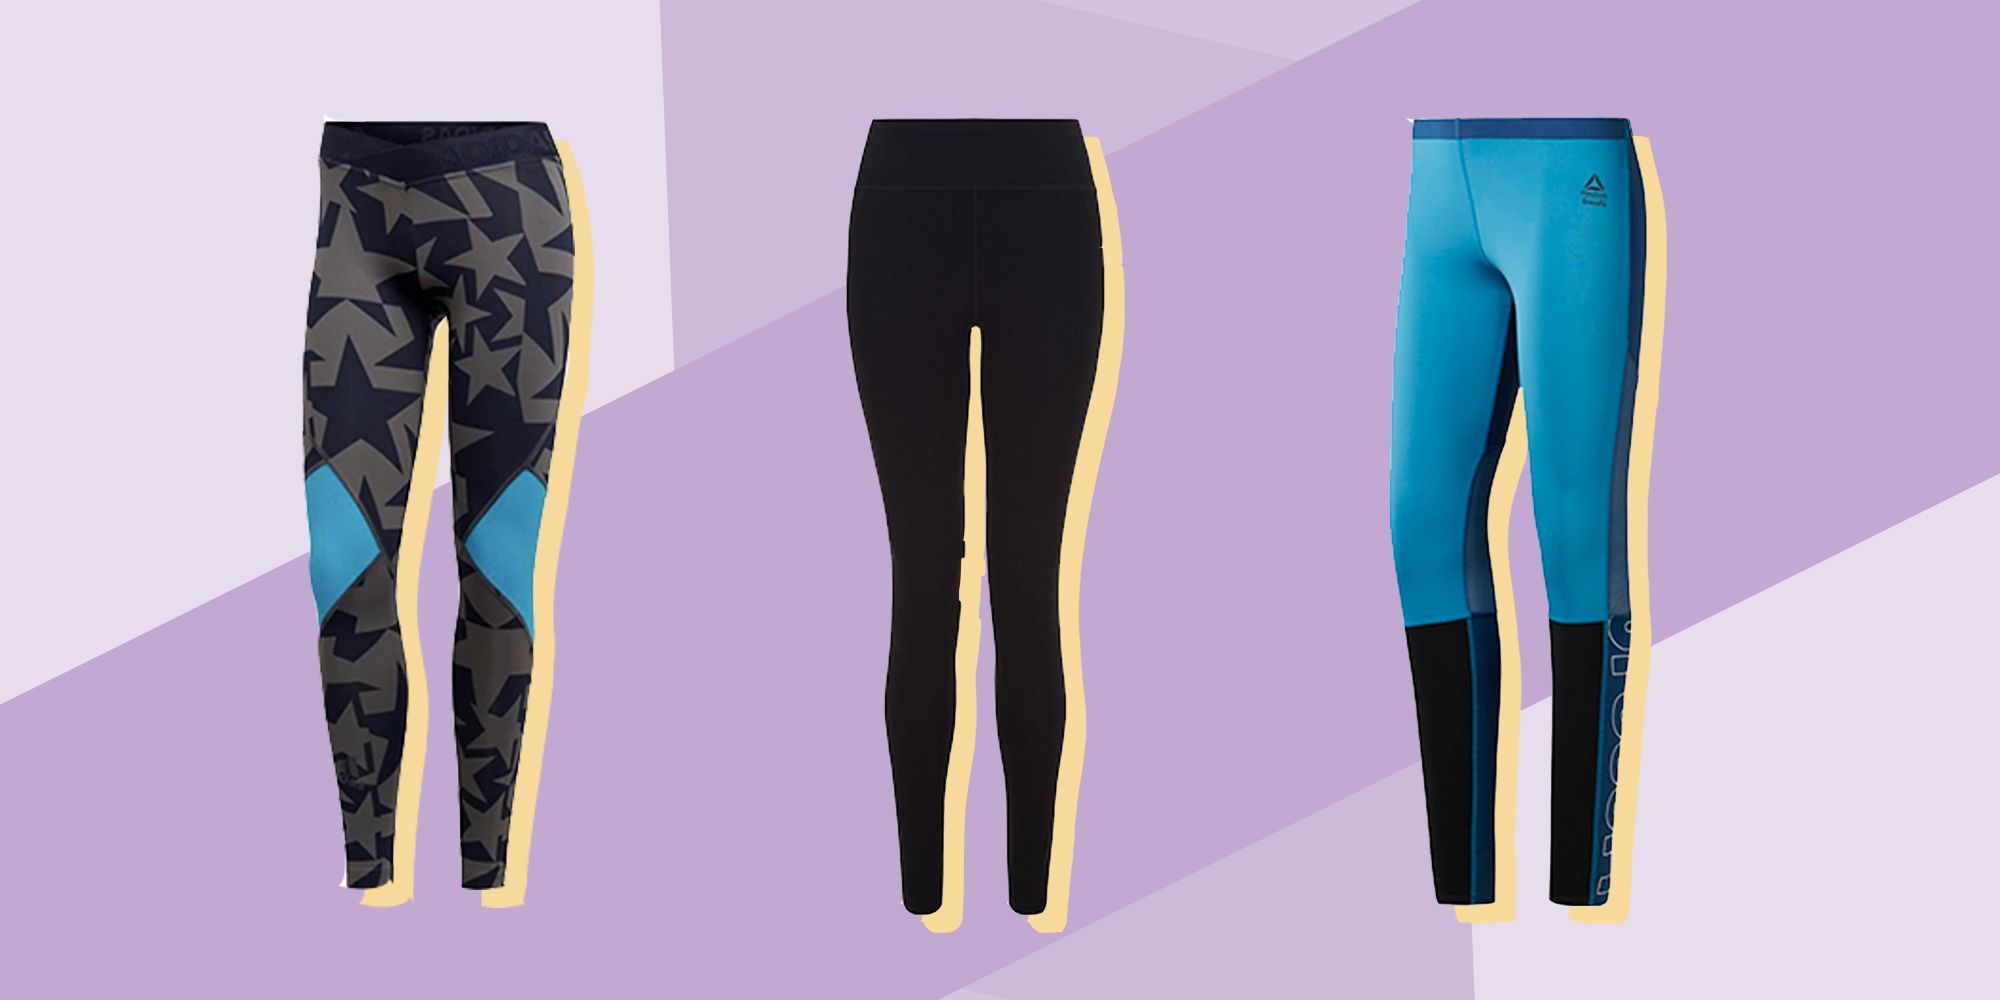 473d8740f75 9 Compression Leggings to Help Deal with DOMS + More